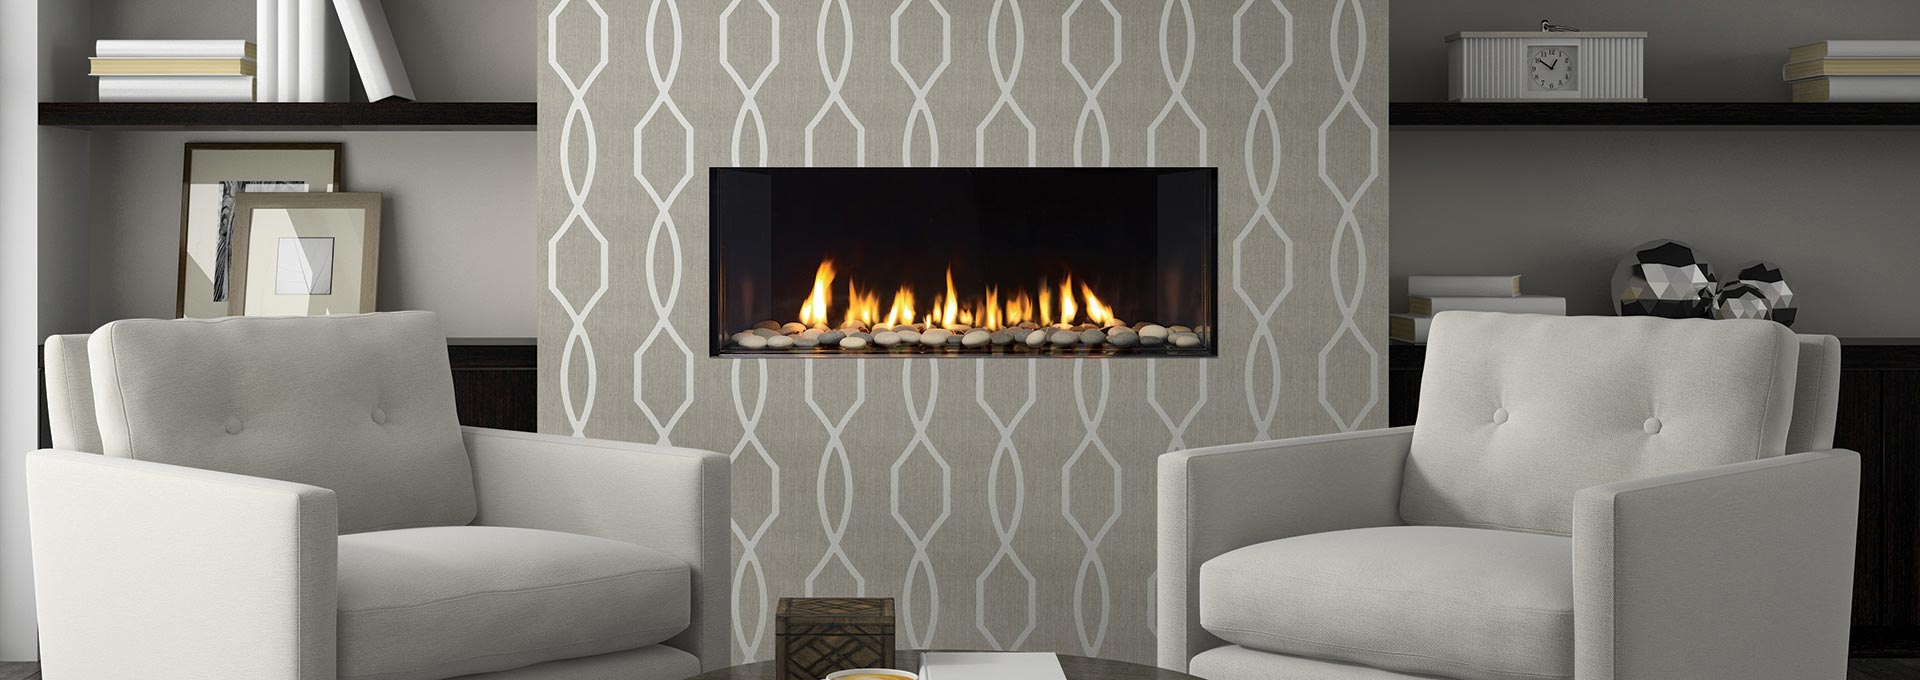 and fireplace gas modern fireplaces home interior on